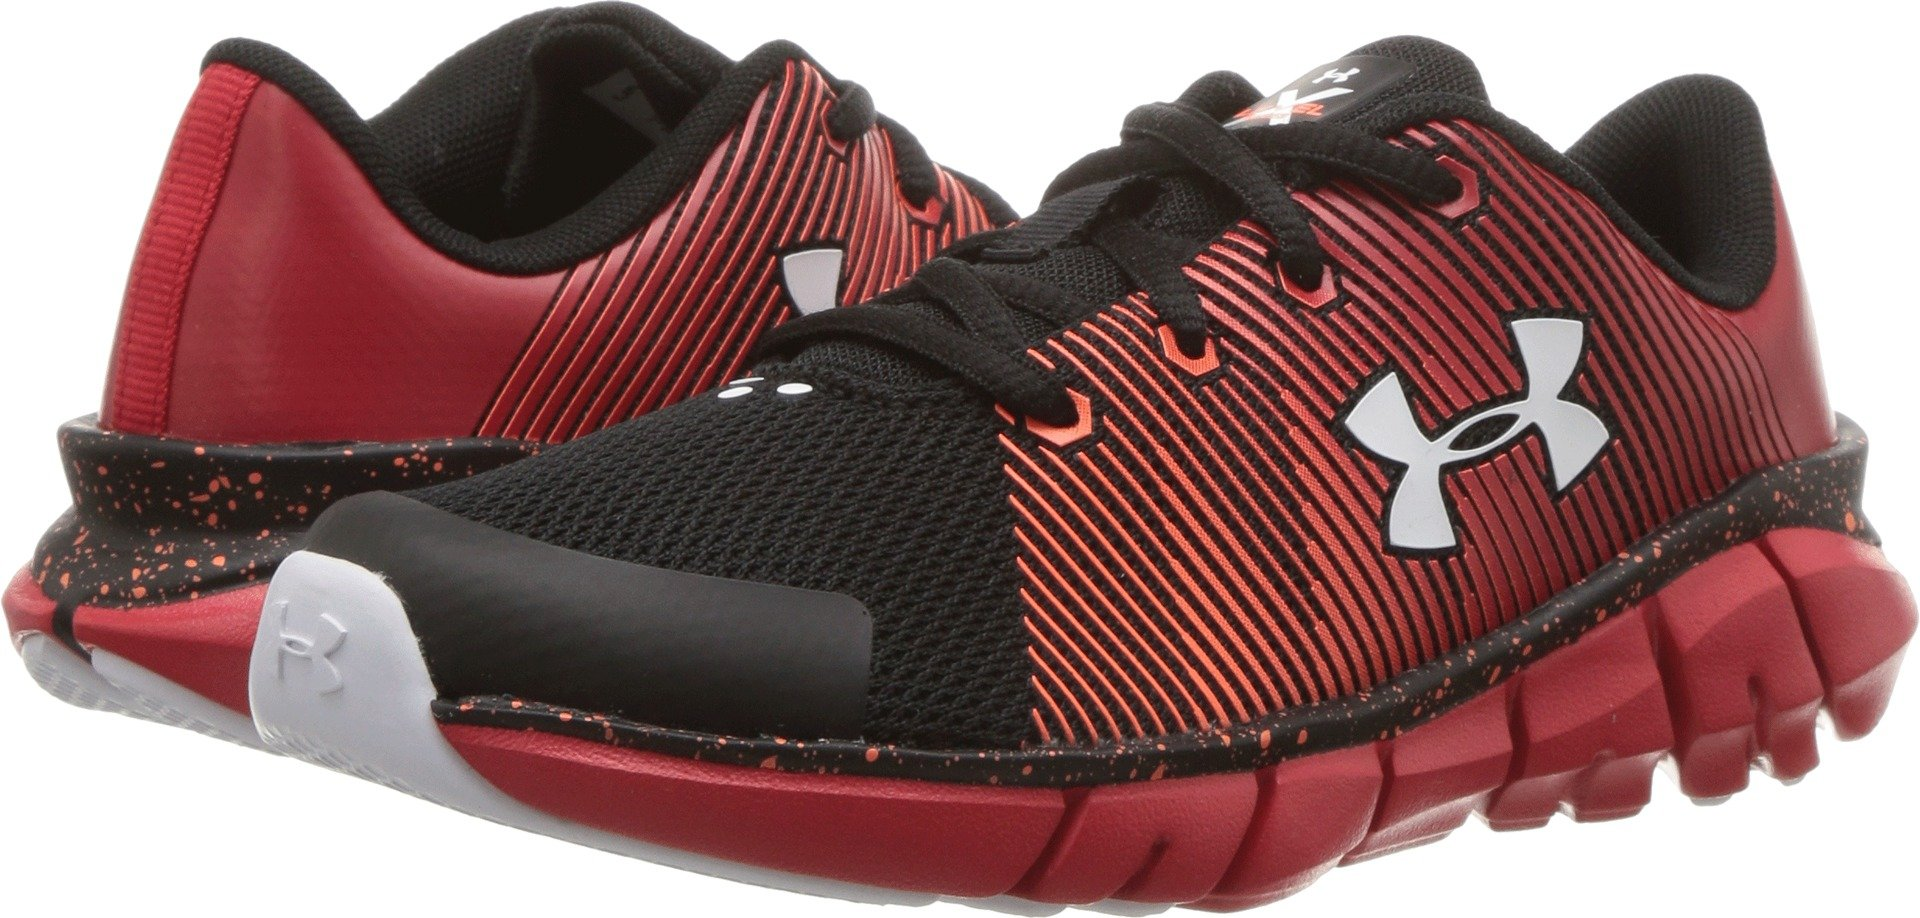 748a921ac3c3 Under Armour Kids Boy s UA X Level Scramjet (Little Kid) Black Red White  13.5 M US Little Kid